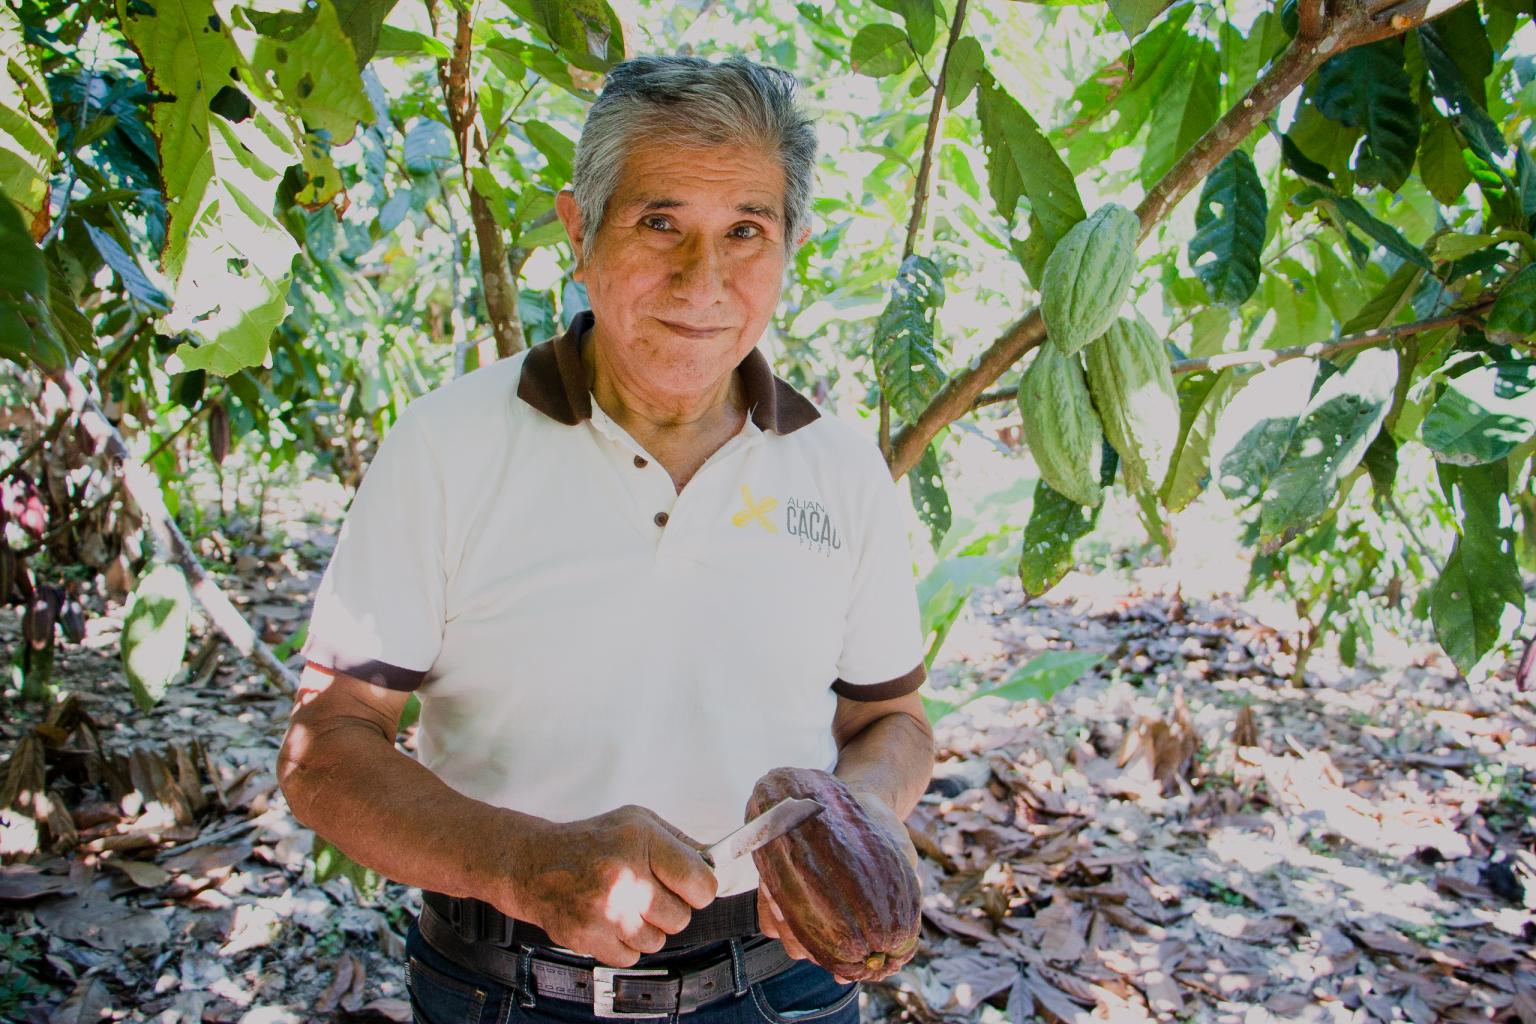 The Peru Cacao Alliance has so far achieved a 24% increase in income among 20,000 farmers. Source: Peru Cacao Alliance